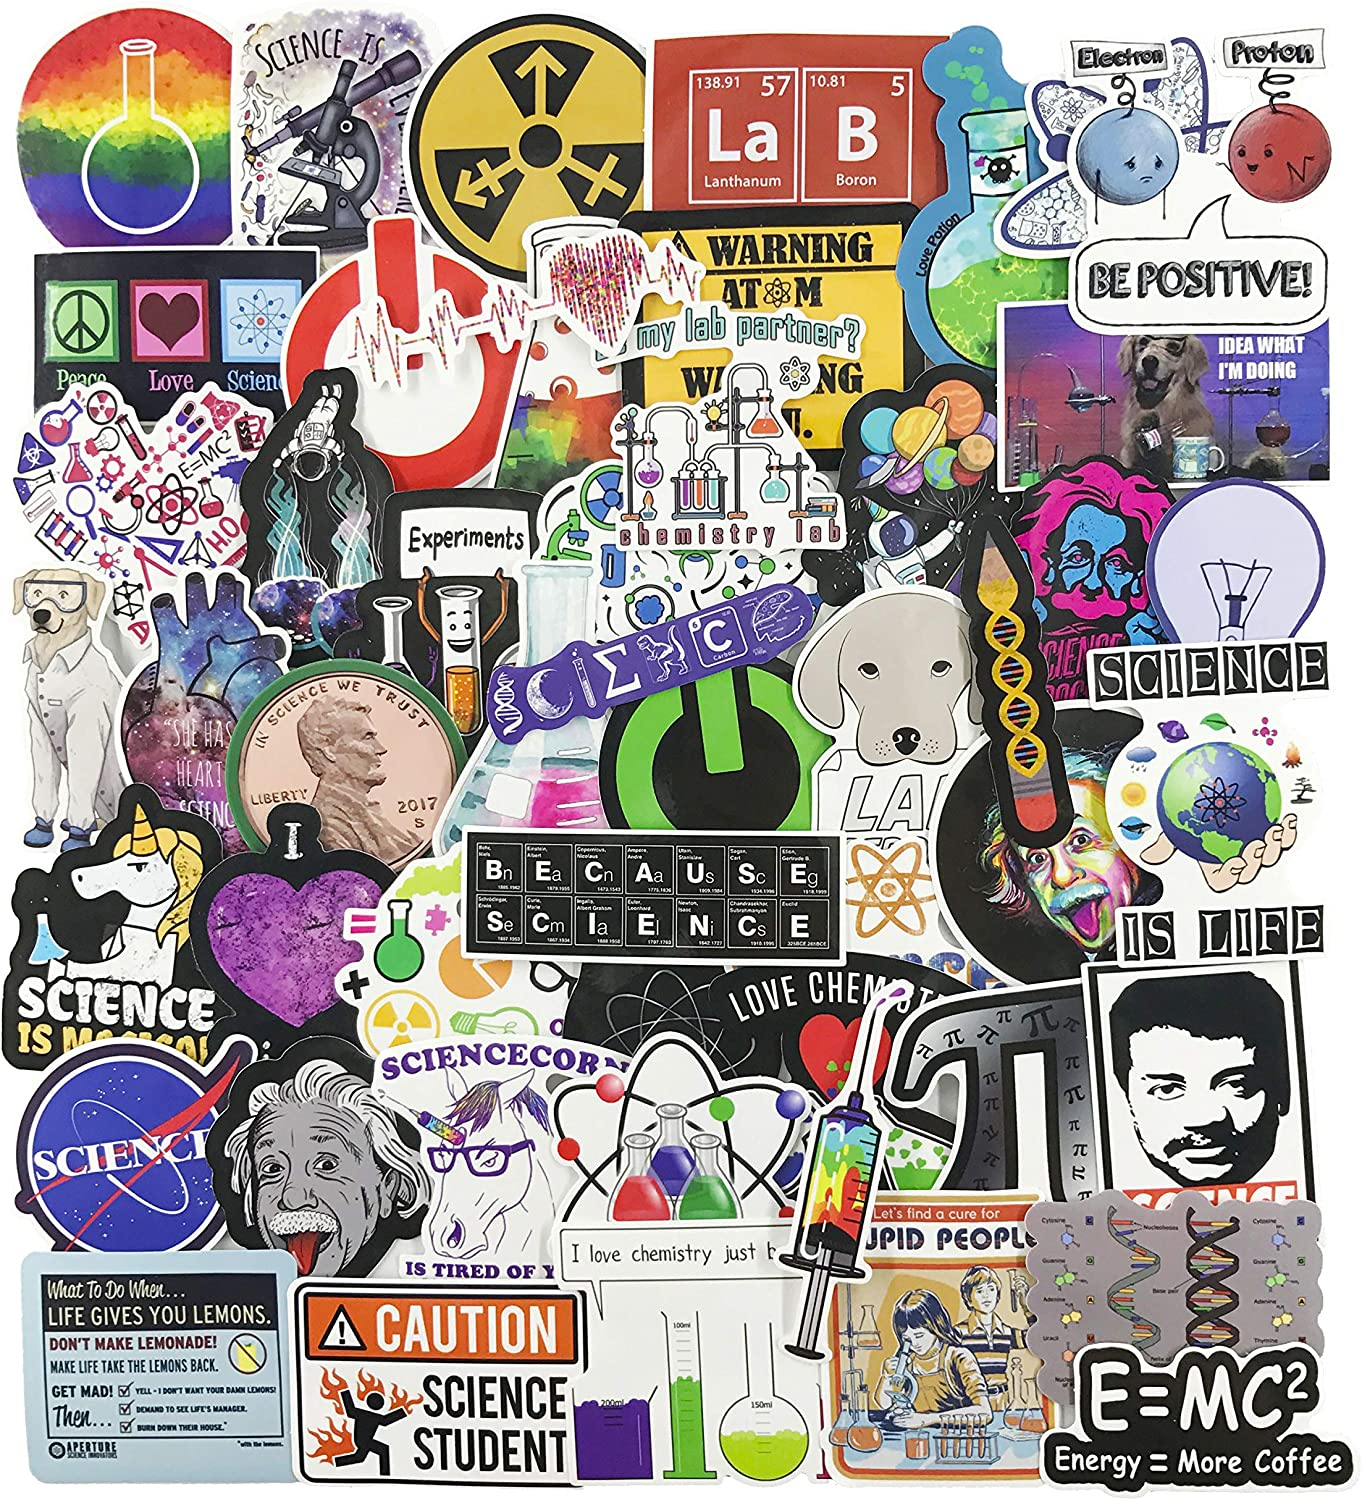 Science Laptop Stickers for Kids, Experiments Decal for Teen, 50pcs Pack Vinyl Skateboard Water Bottle Phone Computer Travel Case Guitar Snowboard Luggage Car Bike Graffiti Decal